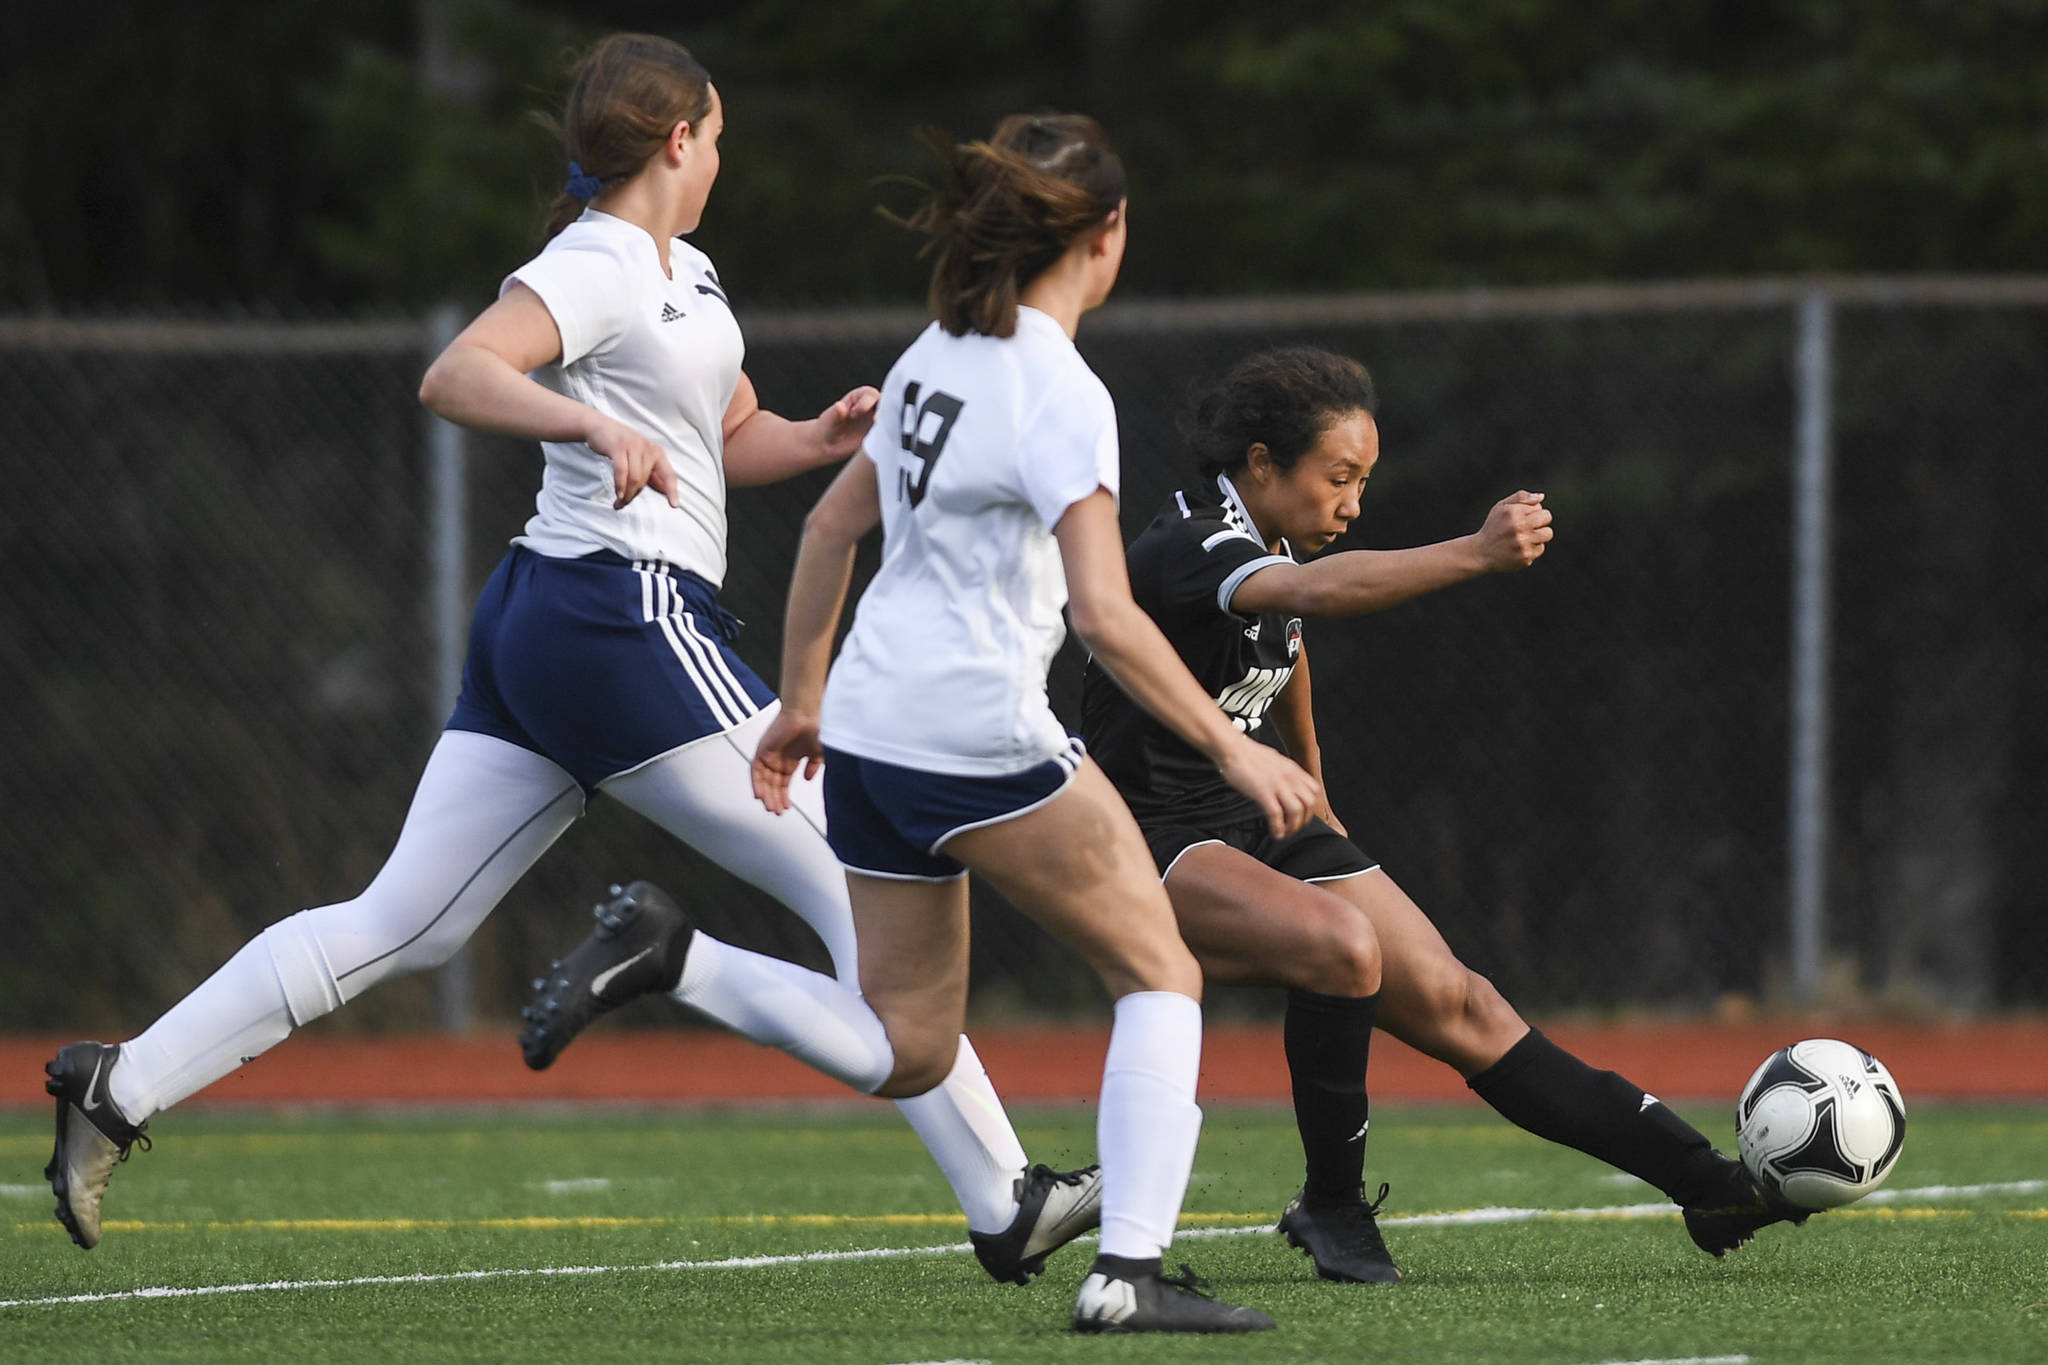 Juneau-Douglas' Malia Miller, right, shoots and scores against Soldotna's Sierra Longfellow, left, and Caleigh Glassmaker at Adair-Kennedy Memorial Field on Friday, April 26, 2019. When JDHS and Soldotna rematched in the state championship match a month later, Miller scored two more goals to finish with 105 in her career, the most in Alaska girls soccer. (Michael Penn | Juneau Empire File)